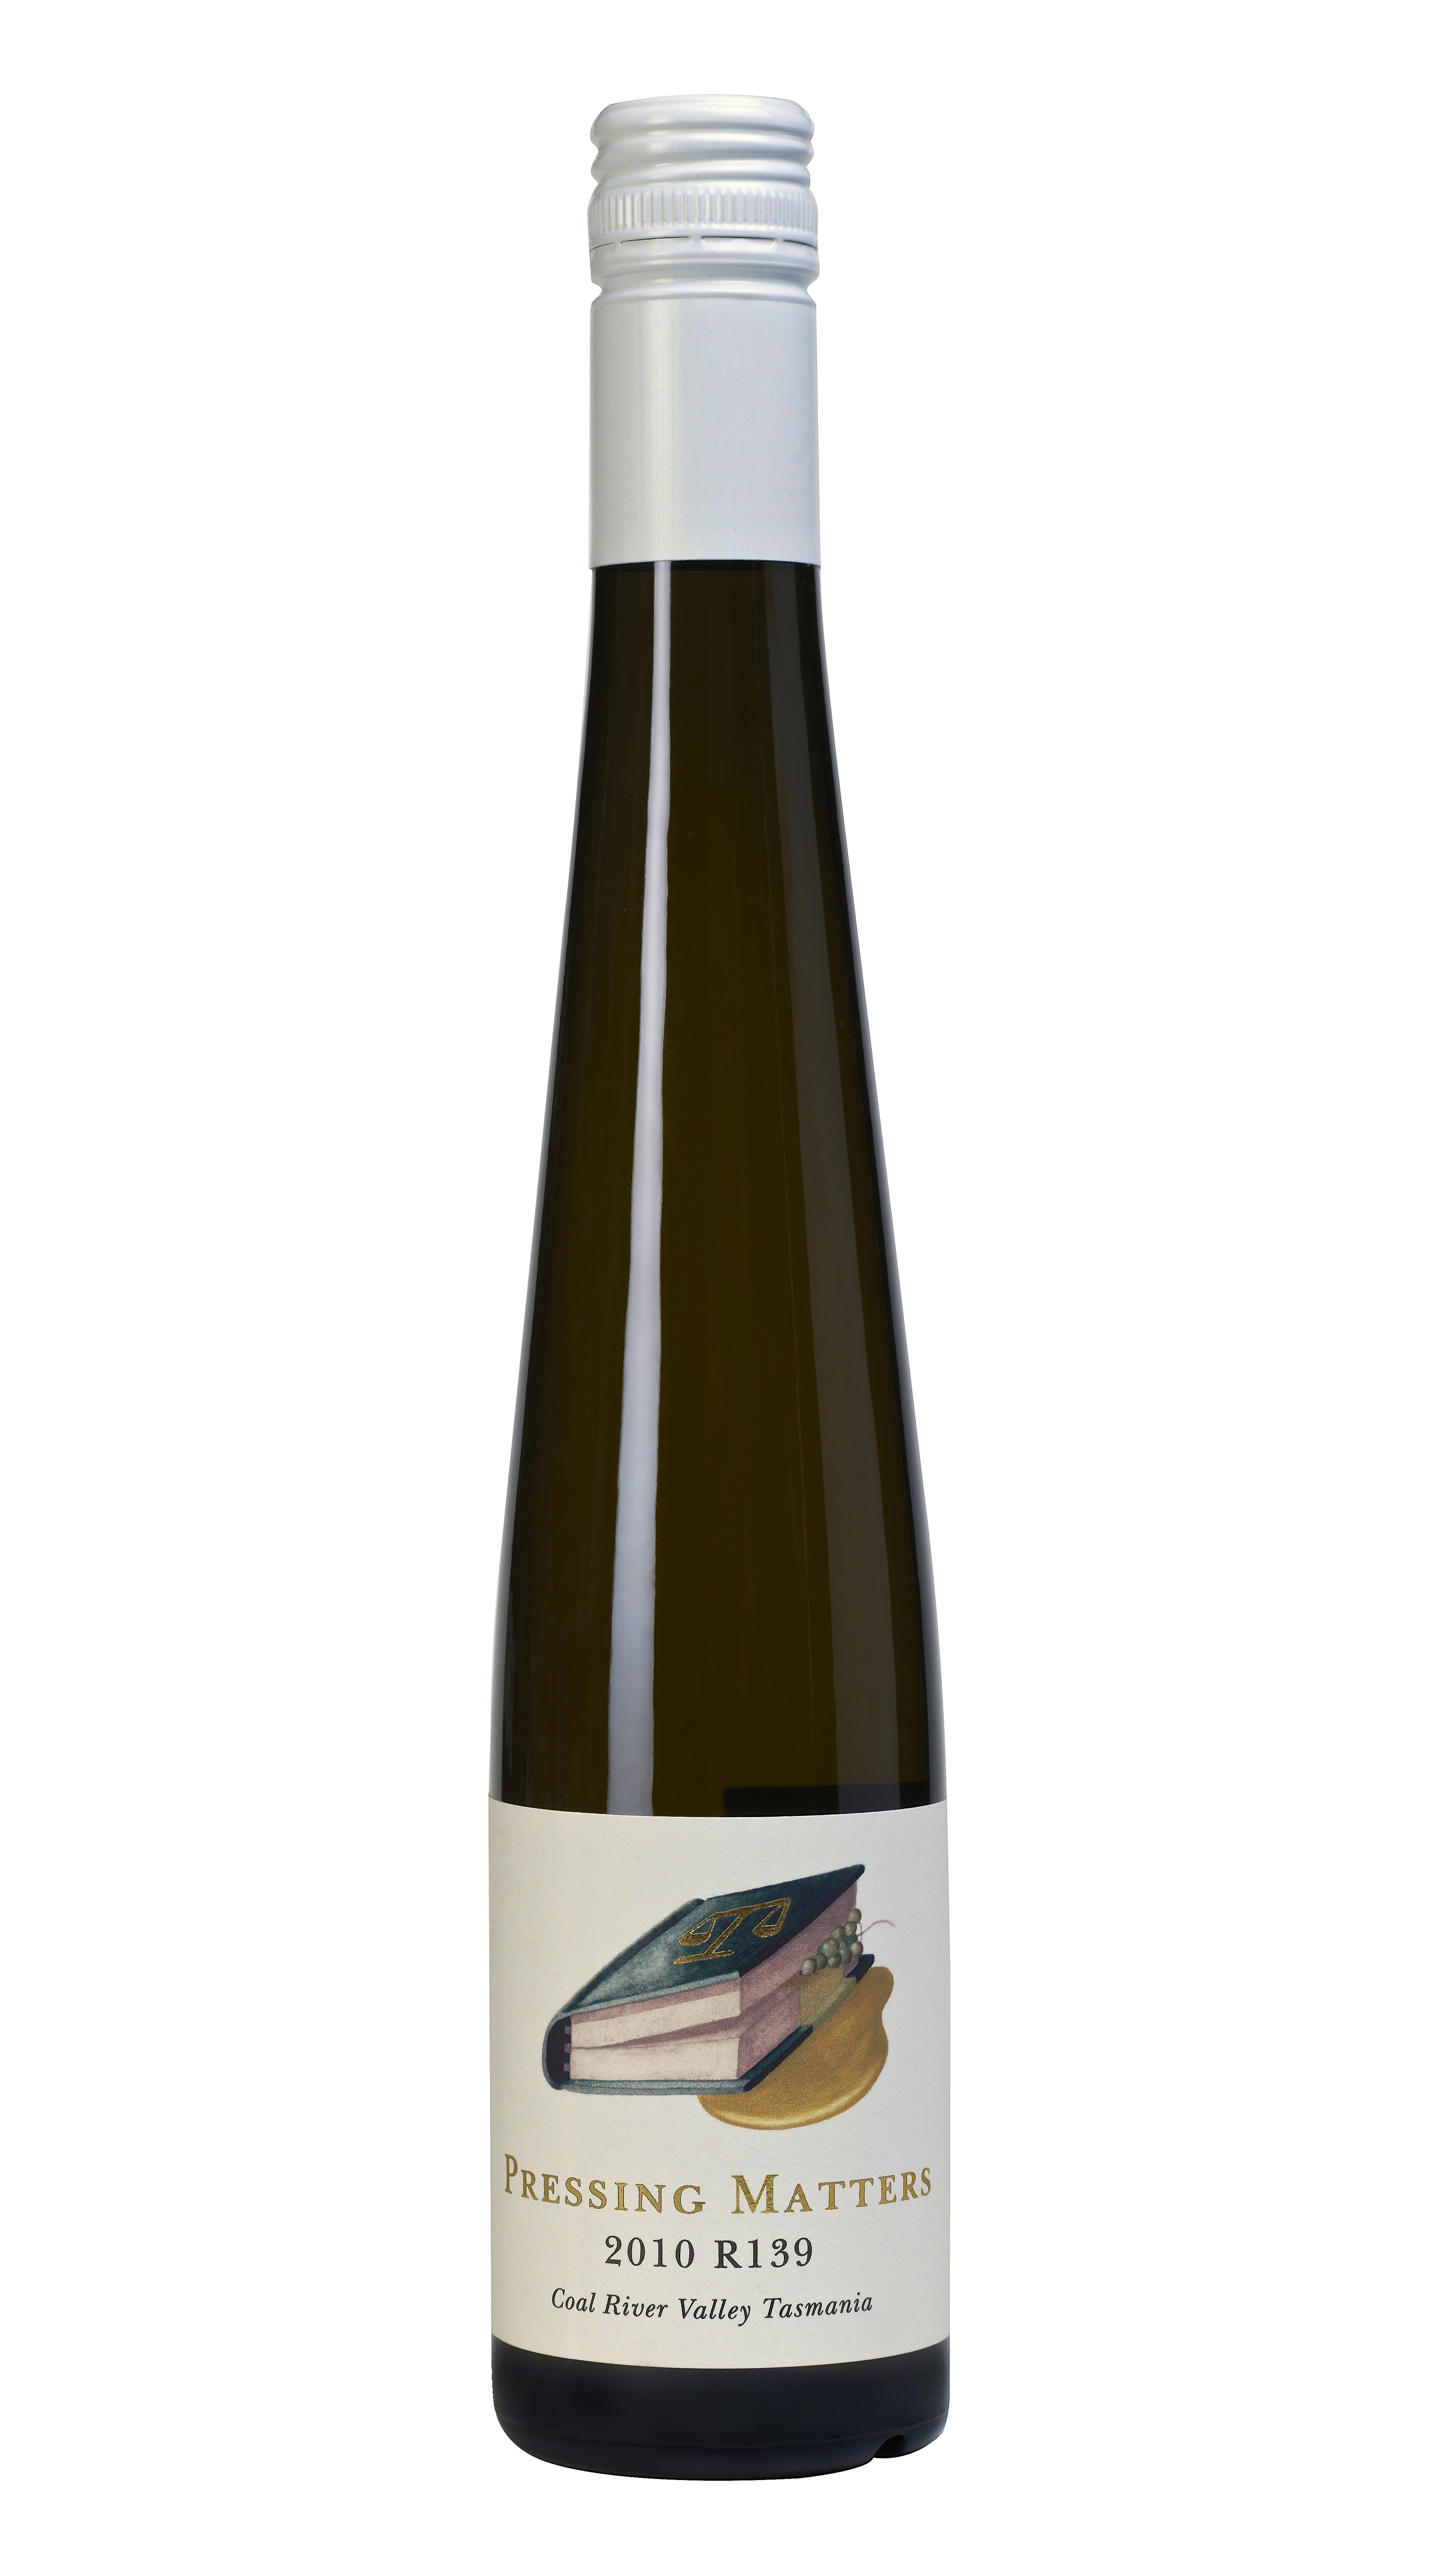 2010 Pressing Matters Riesling R139